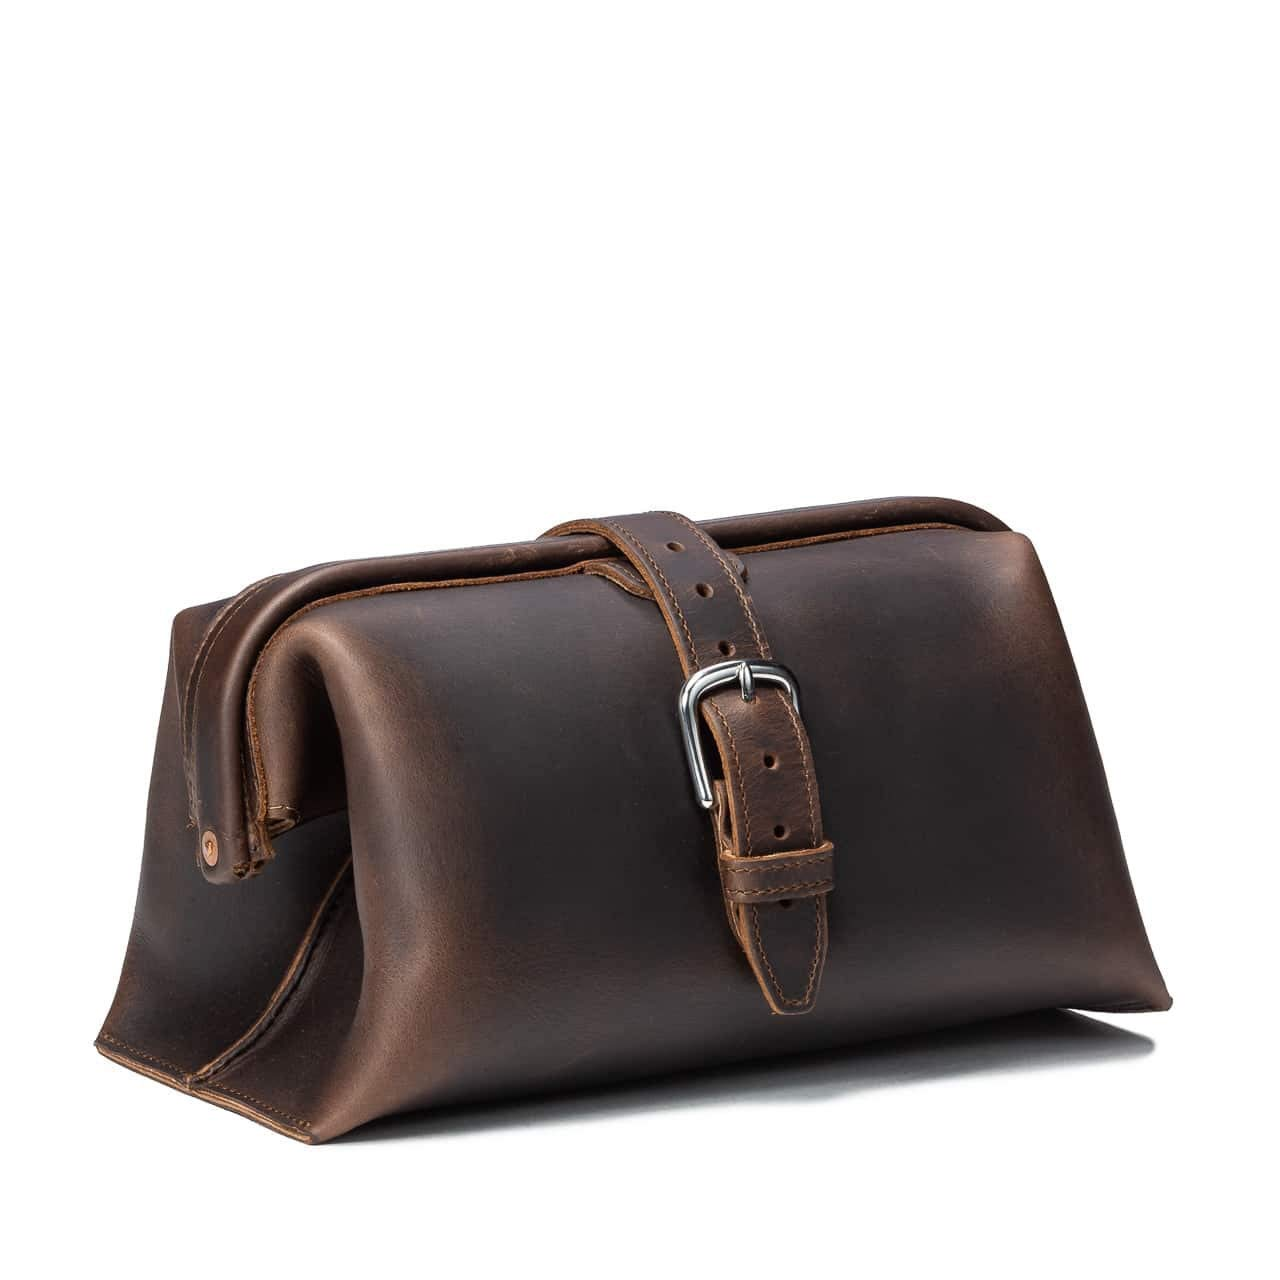 Saddleback Leather Co. Expandable Full Grain Leather Quality Toiletry Travel Bag Dopp Kit Shower Bathroom Accessory Includes 100 Year Warranty by Saddleback Leather Co.